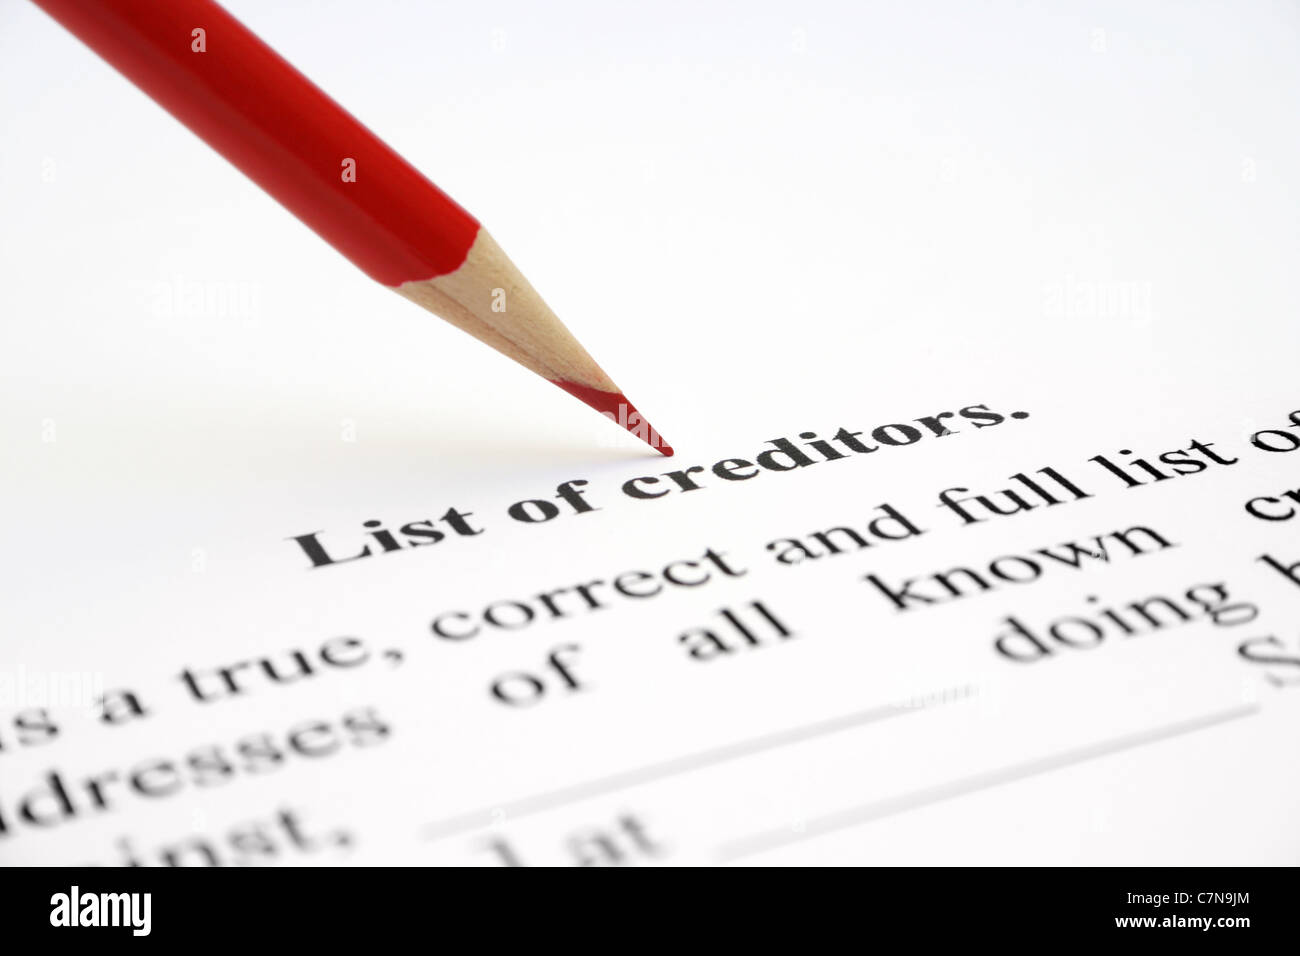 List of creditors - Stock Image